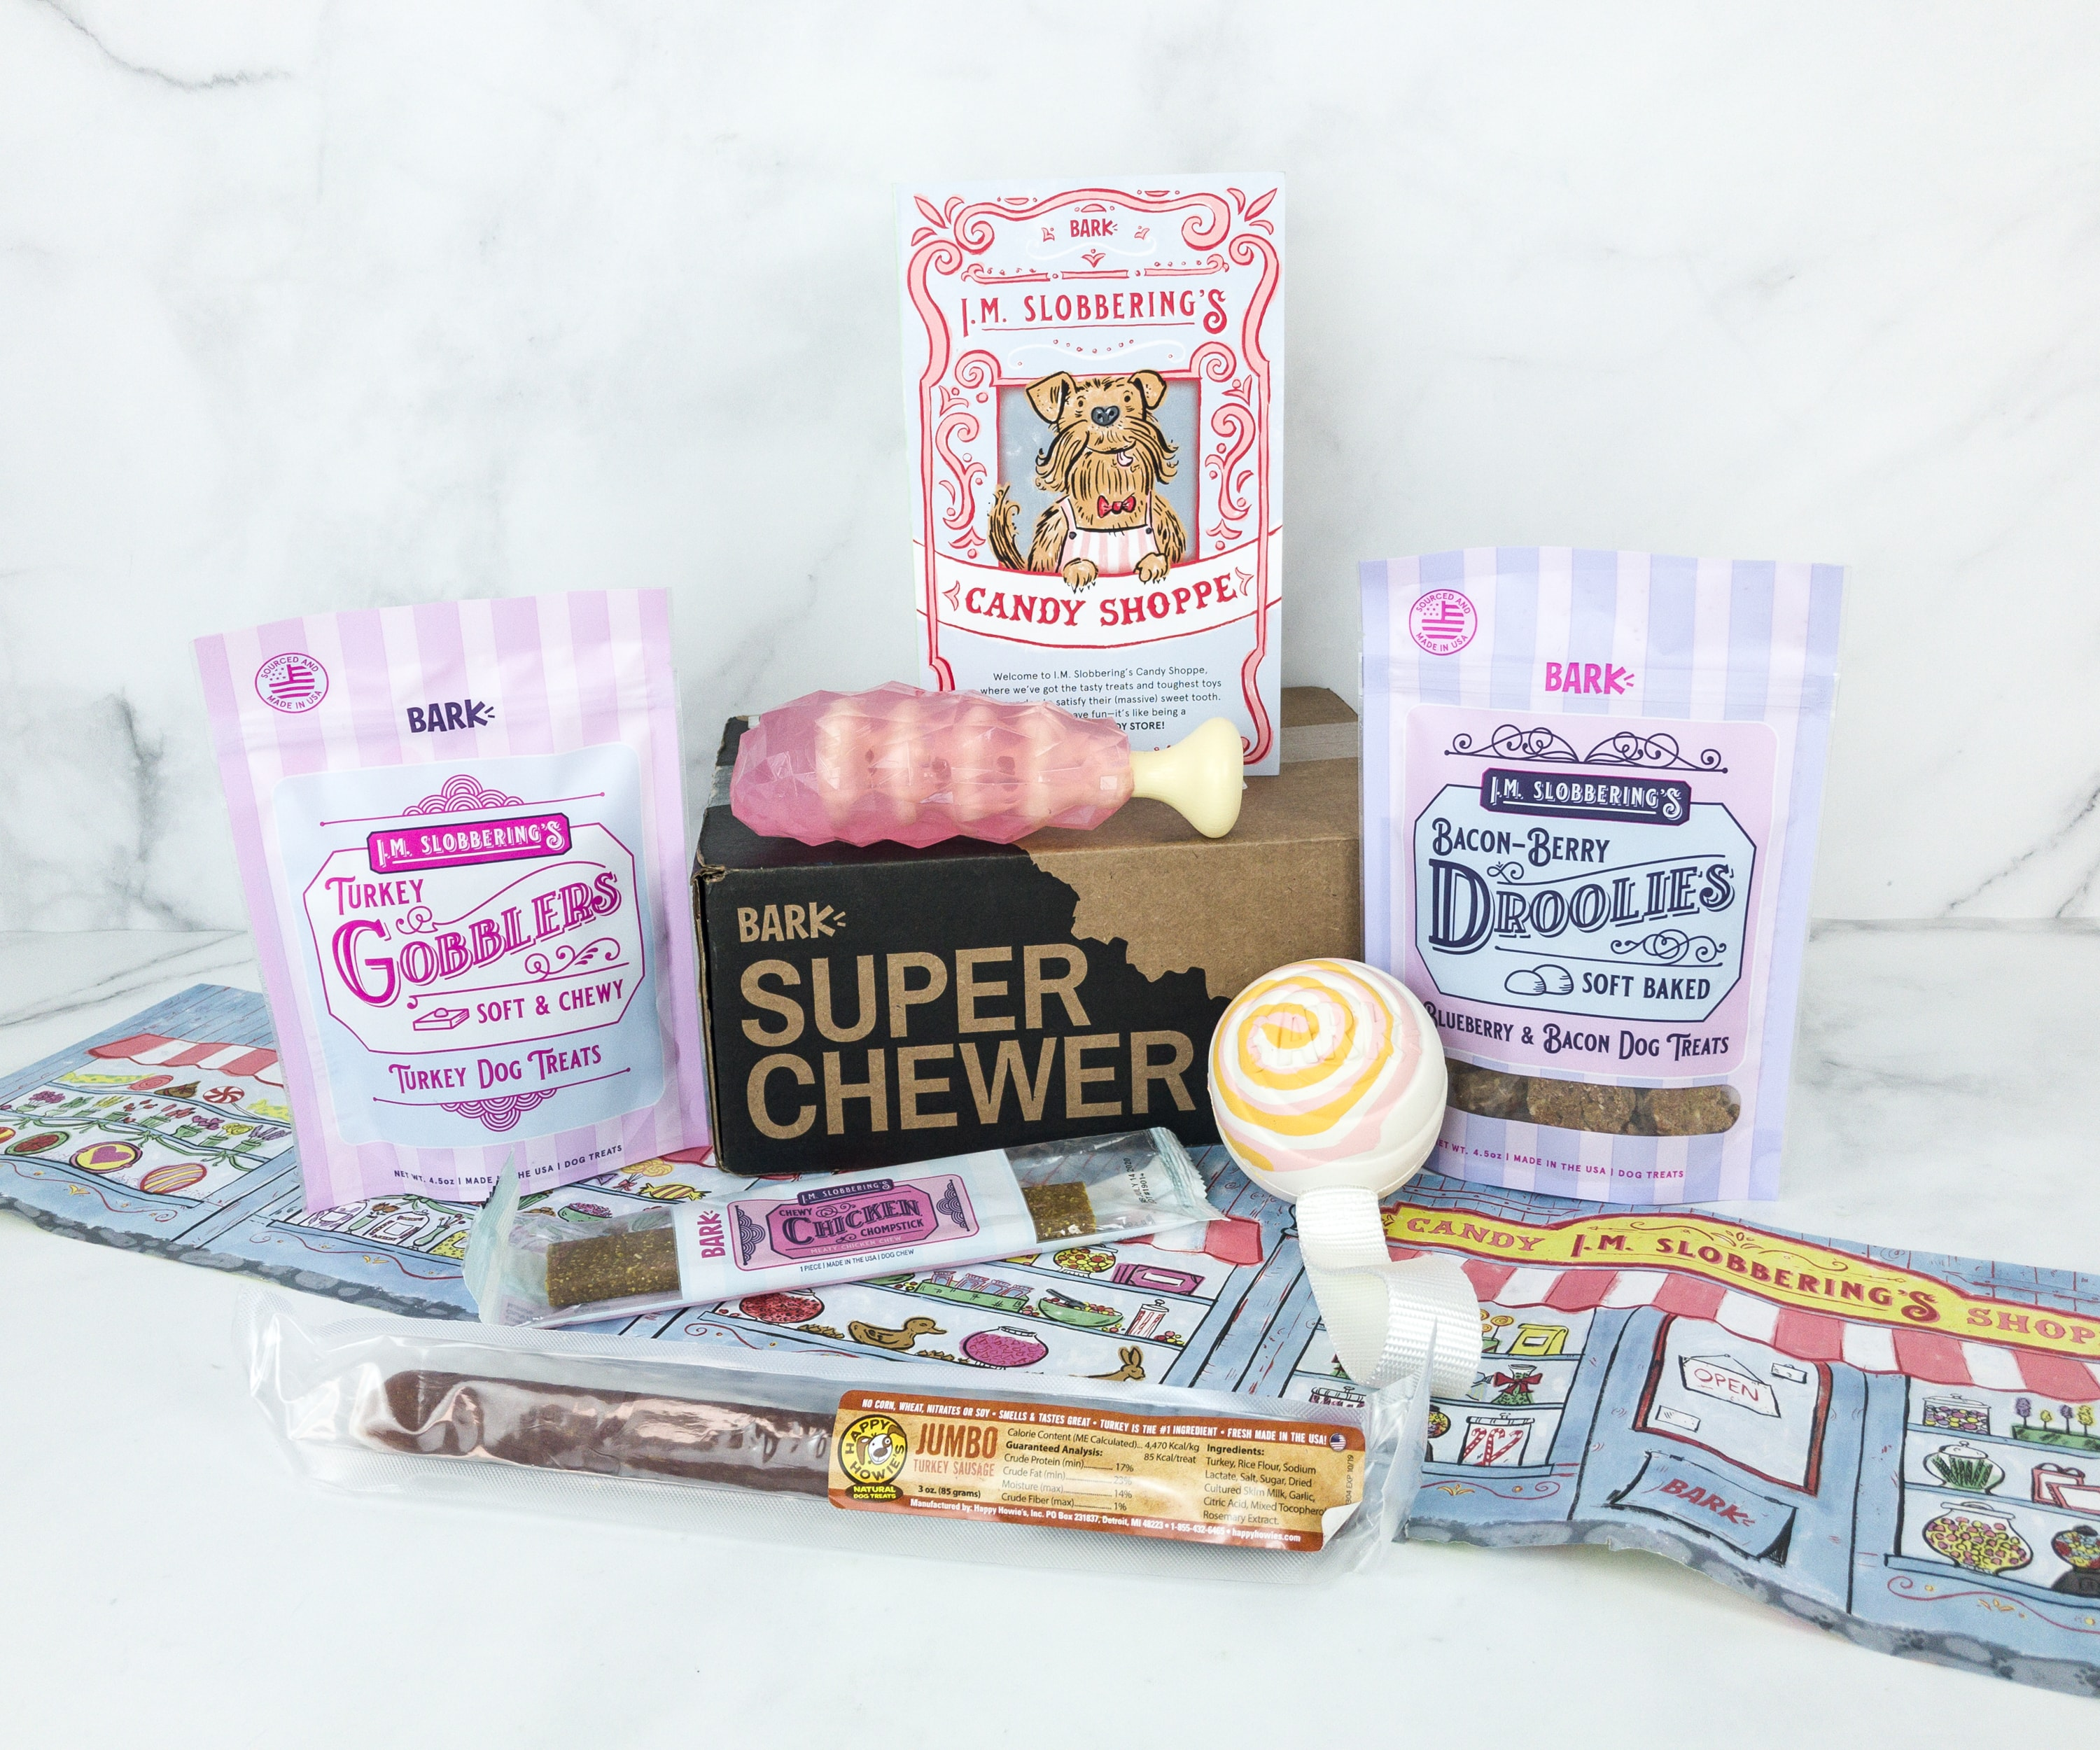 Barkbox Super Chewer February 2019 Subscription Box Review